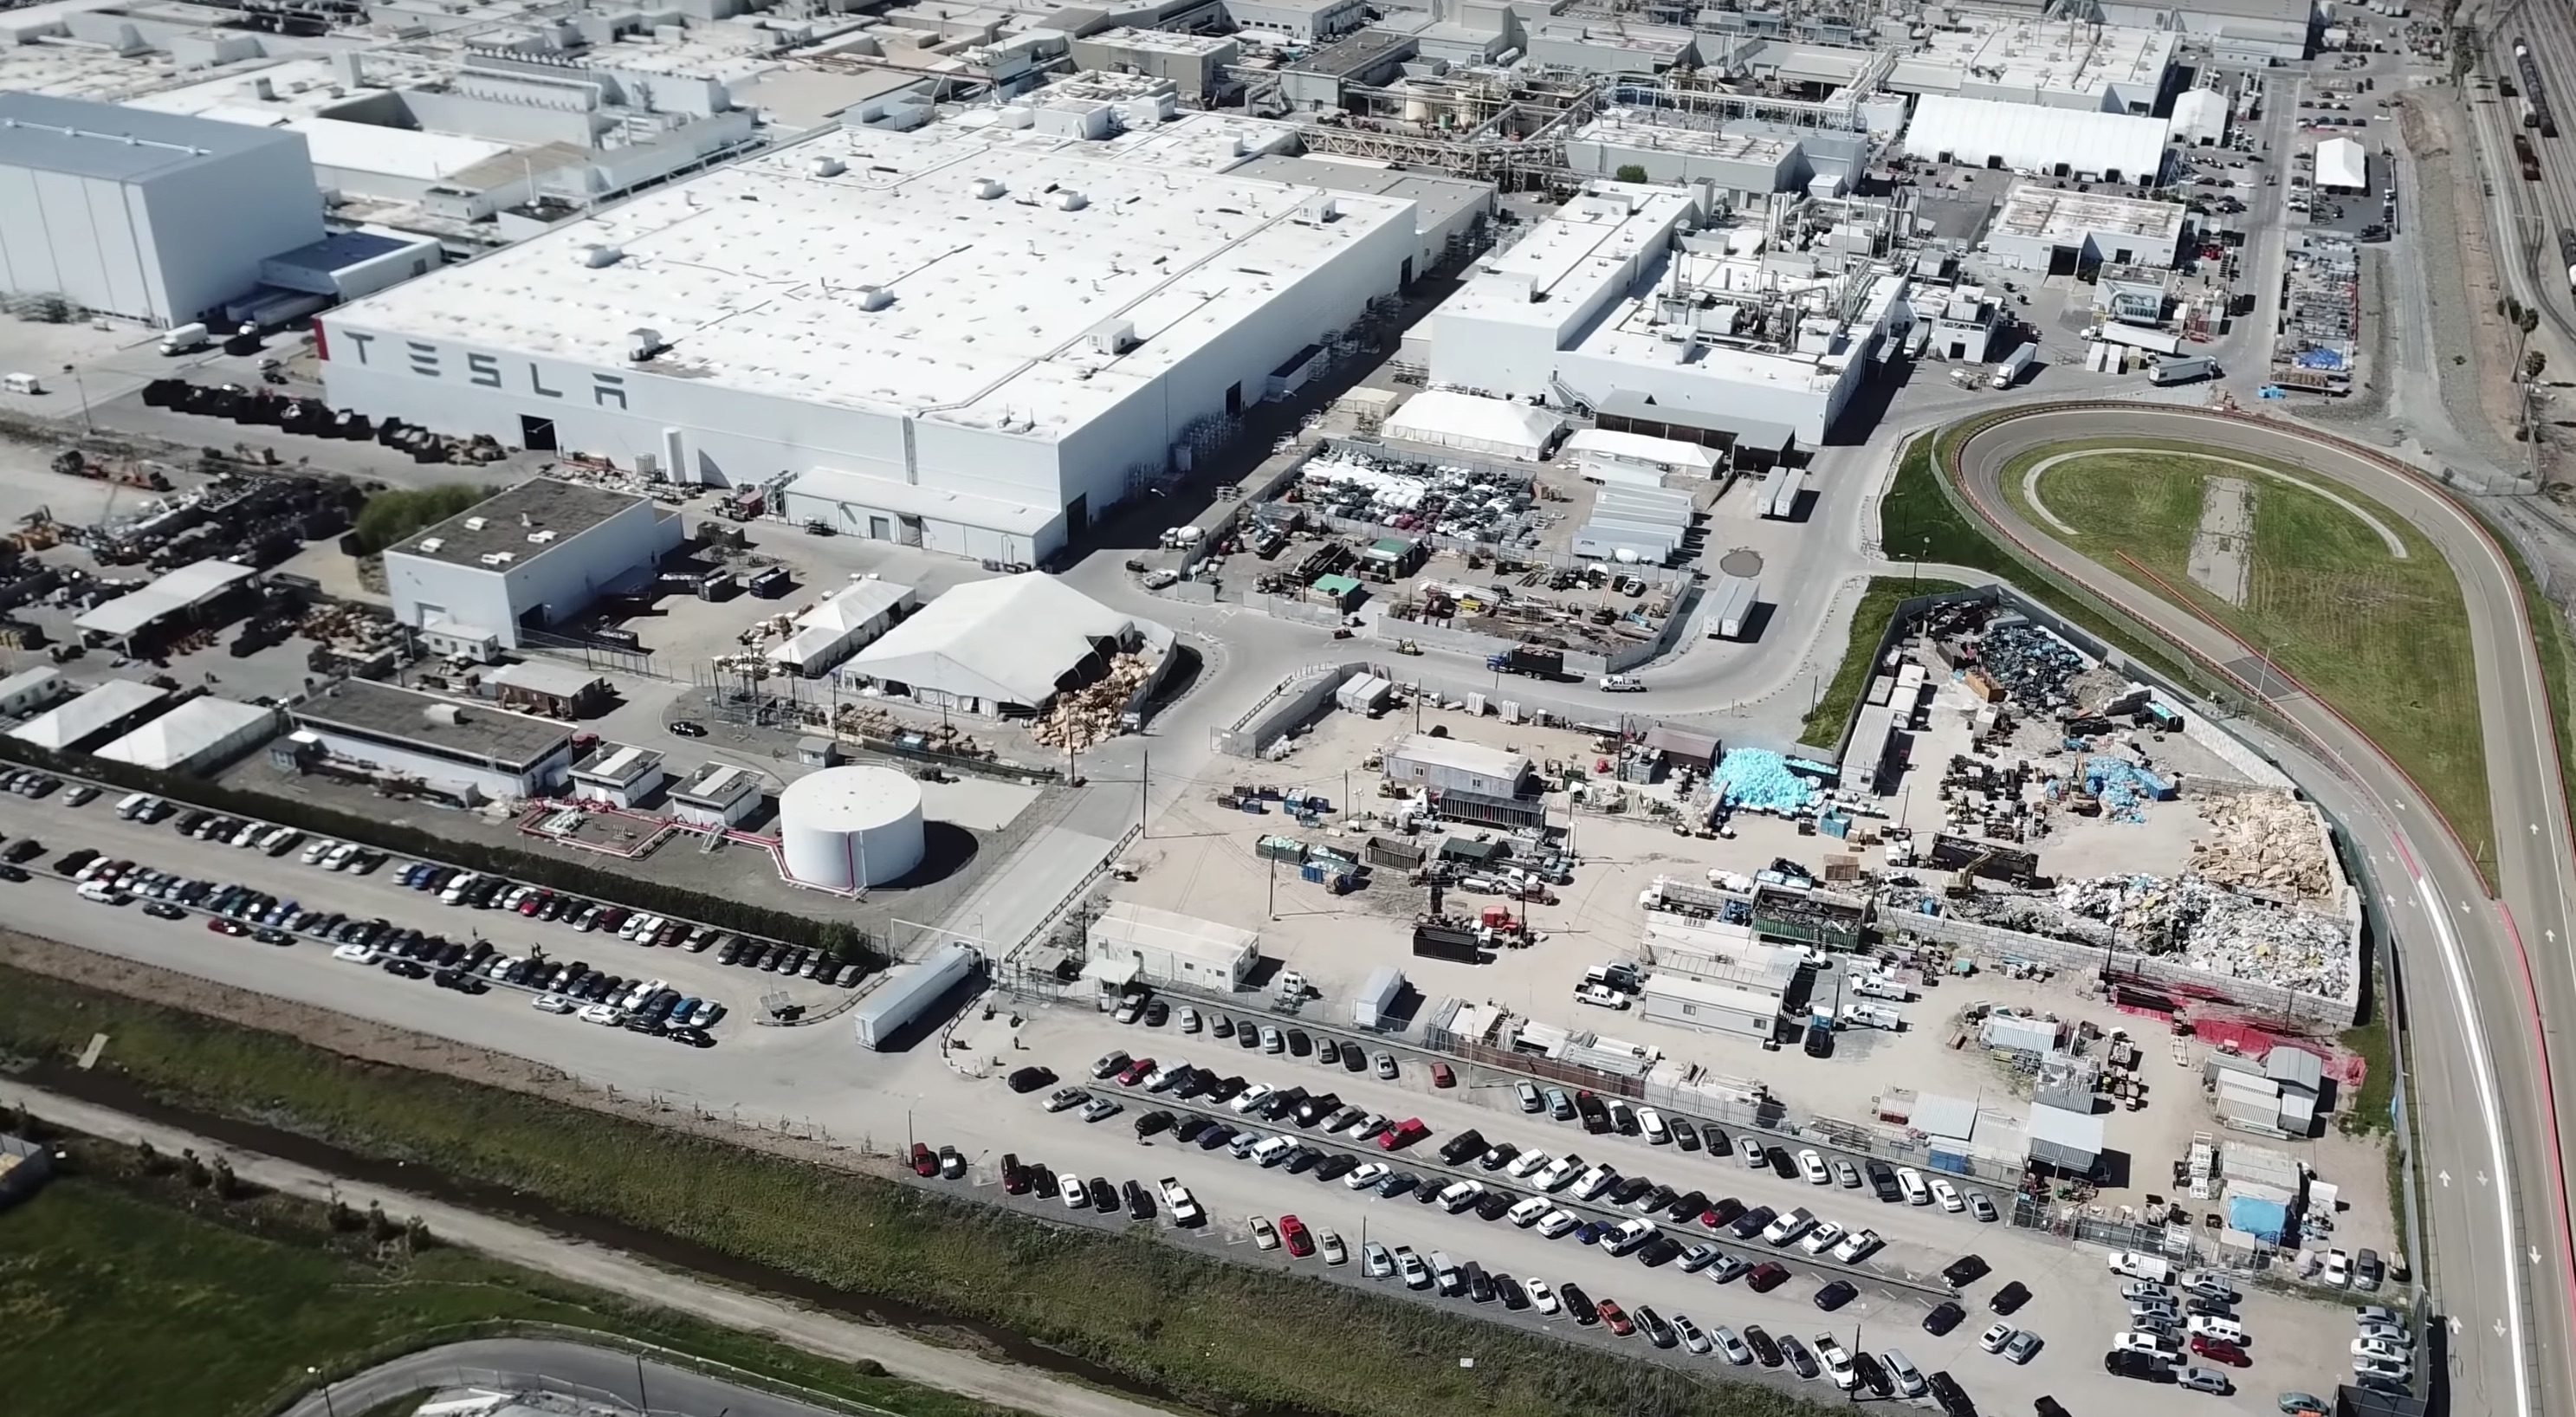 Tesla Fremont Factory Building Permits Reveal Facilities